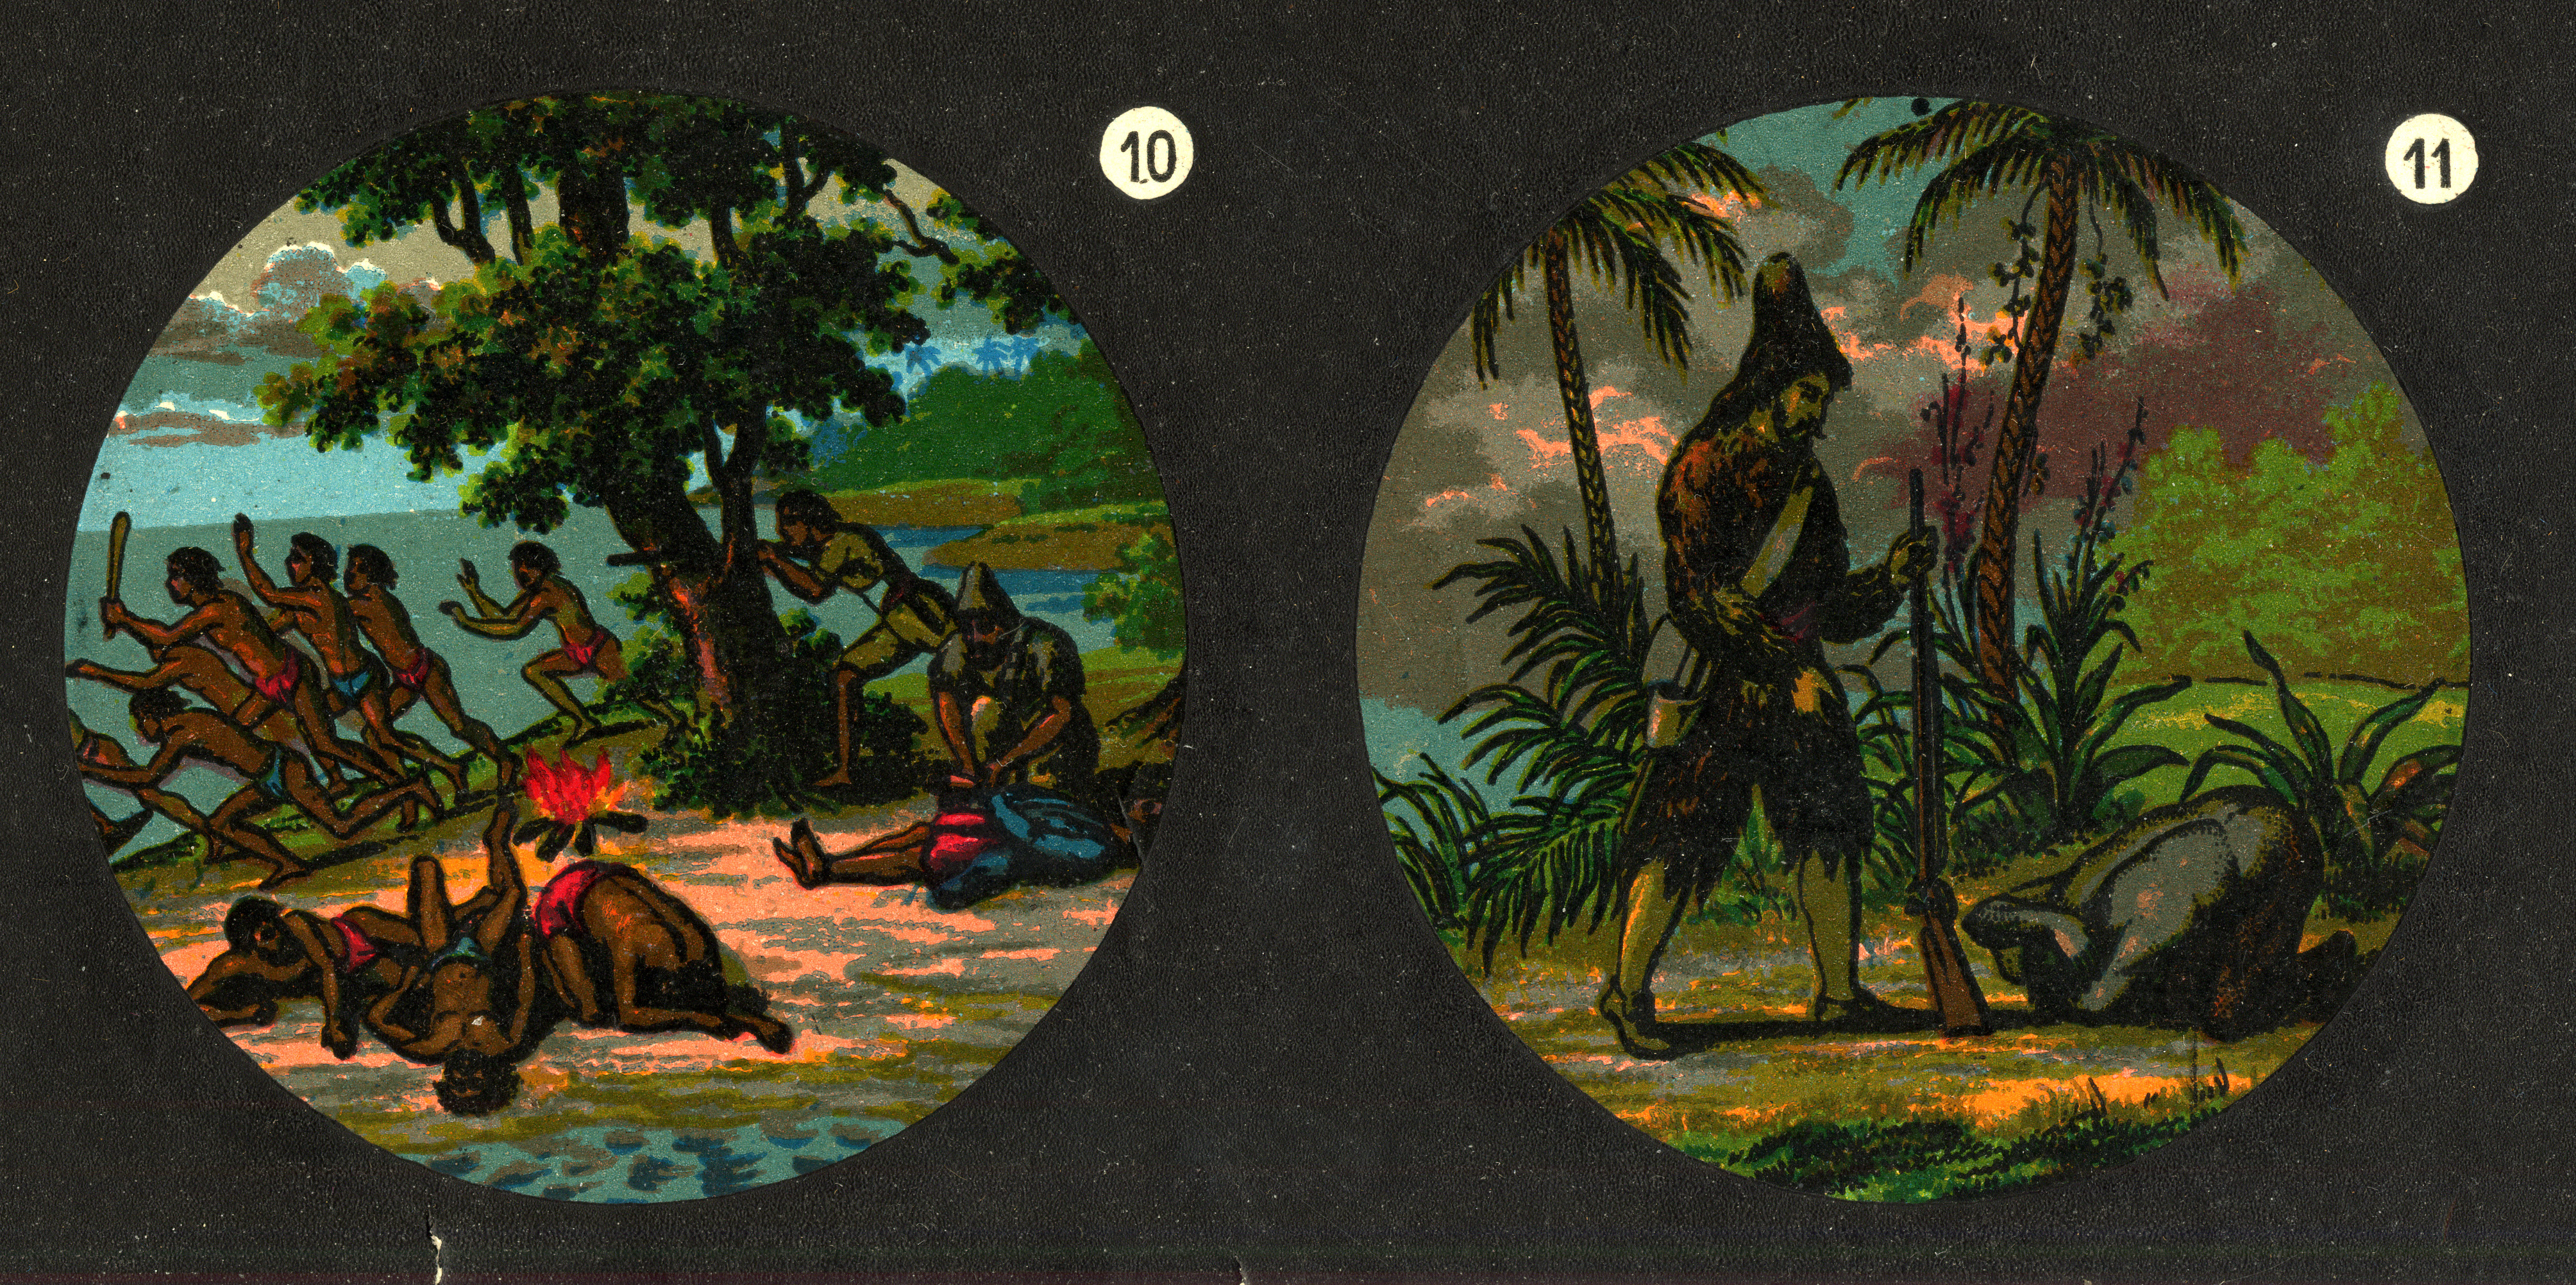 Detail of Robinson Crusoe sheet showing slides 10 and 11